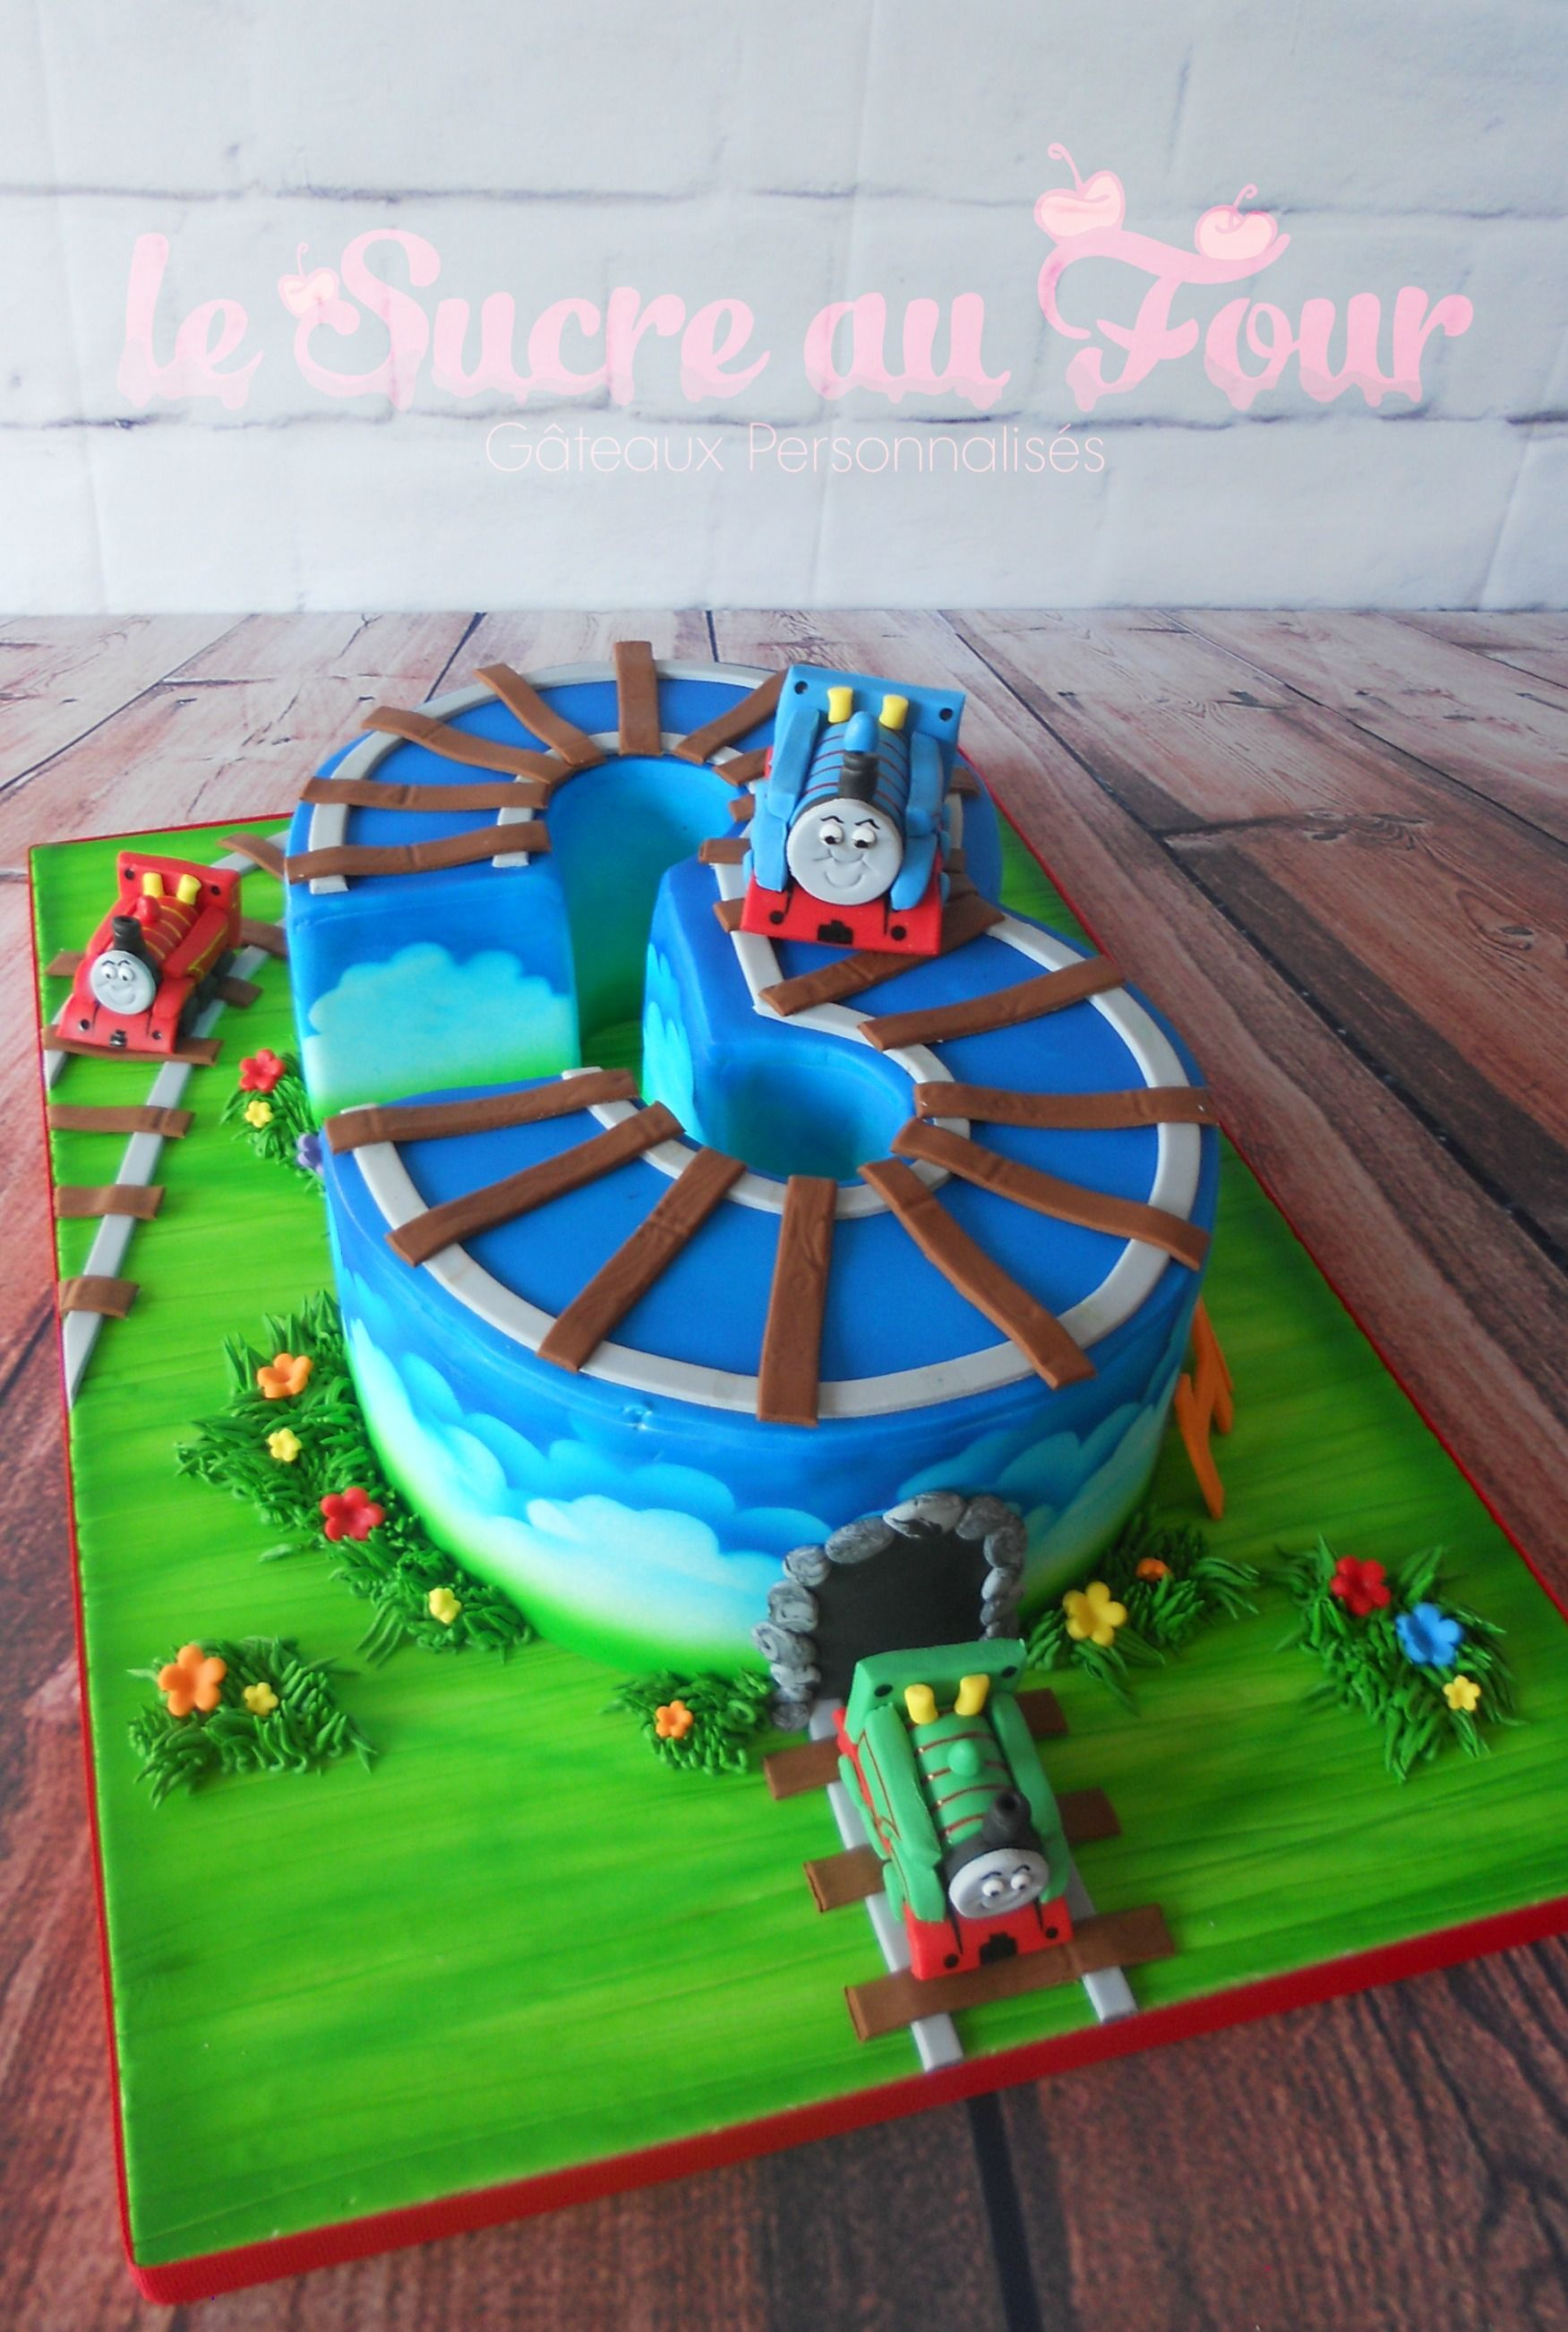 Thomas the train cake Thomas Percy and James figurines Number 3